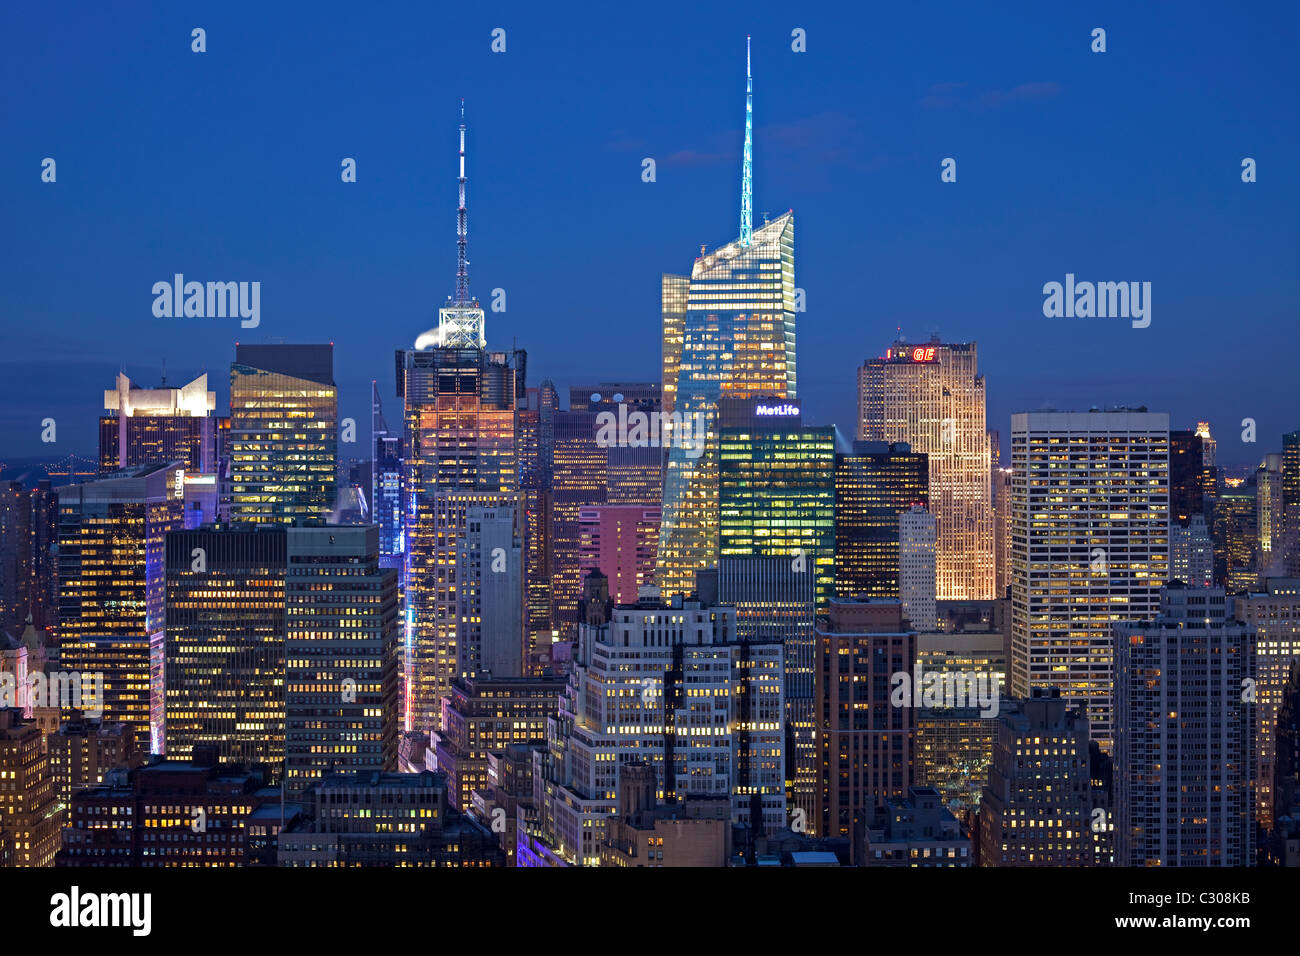 Midtown Manhattan, New York City skyline at dusk  with 4 Times Square, One Bryant Park, and the GE Building. - Stock Image